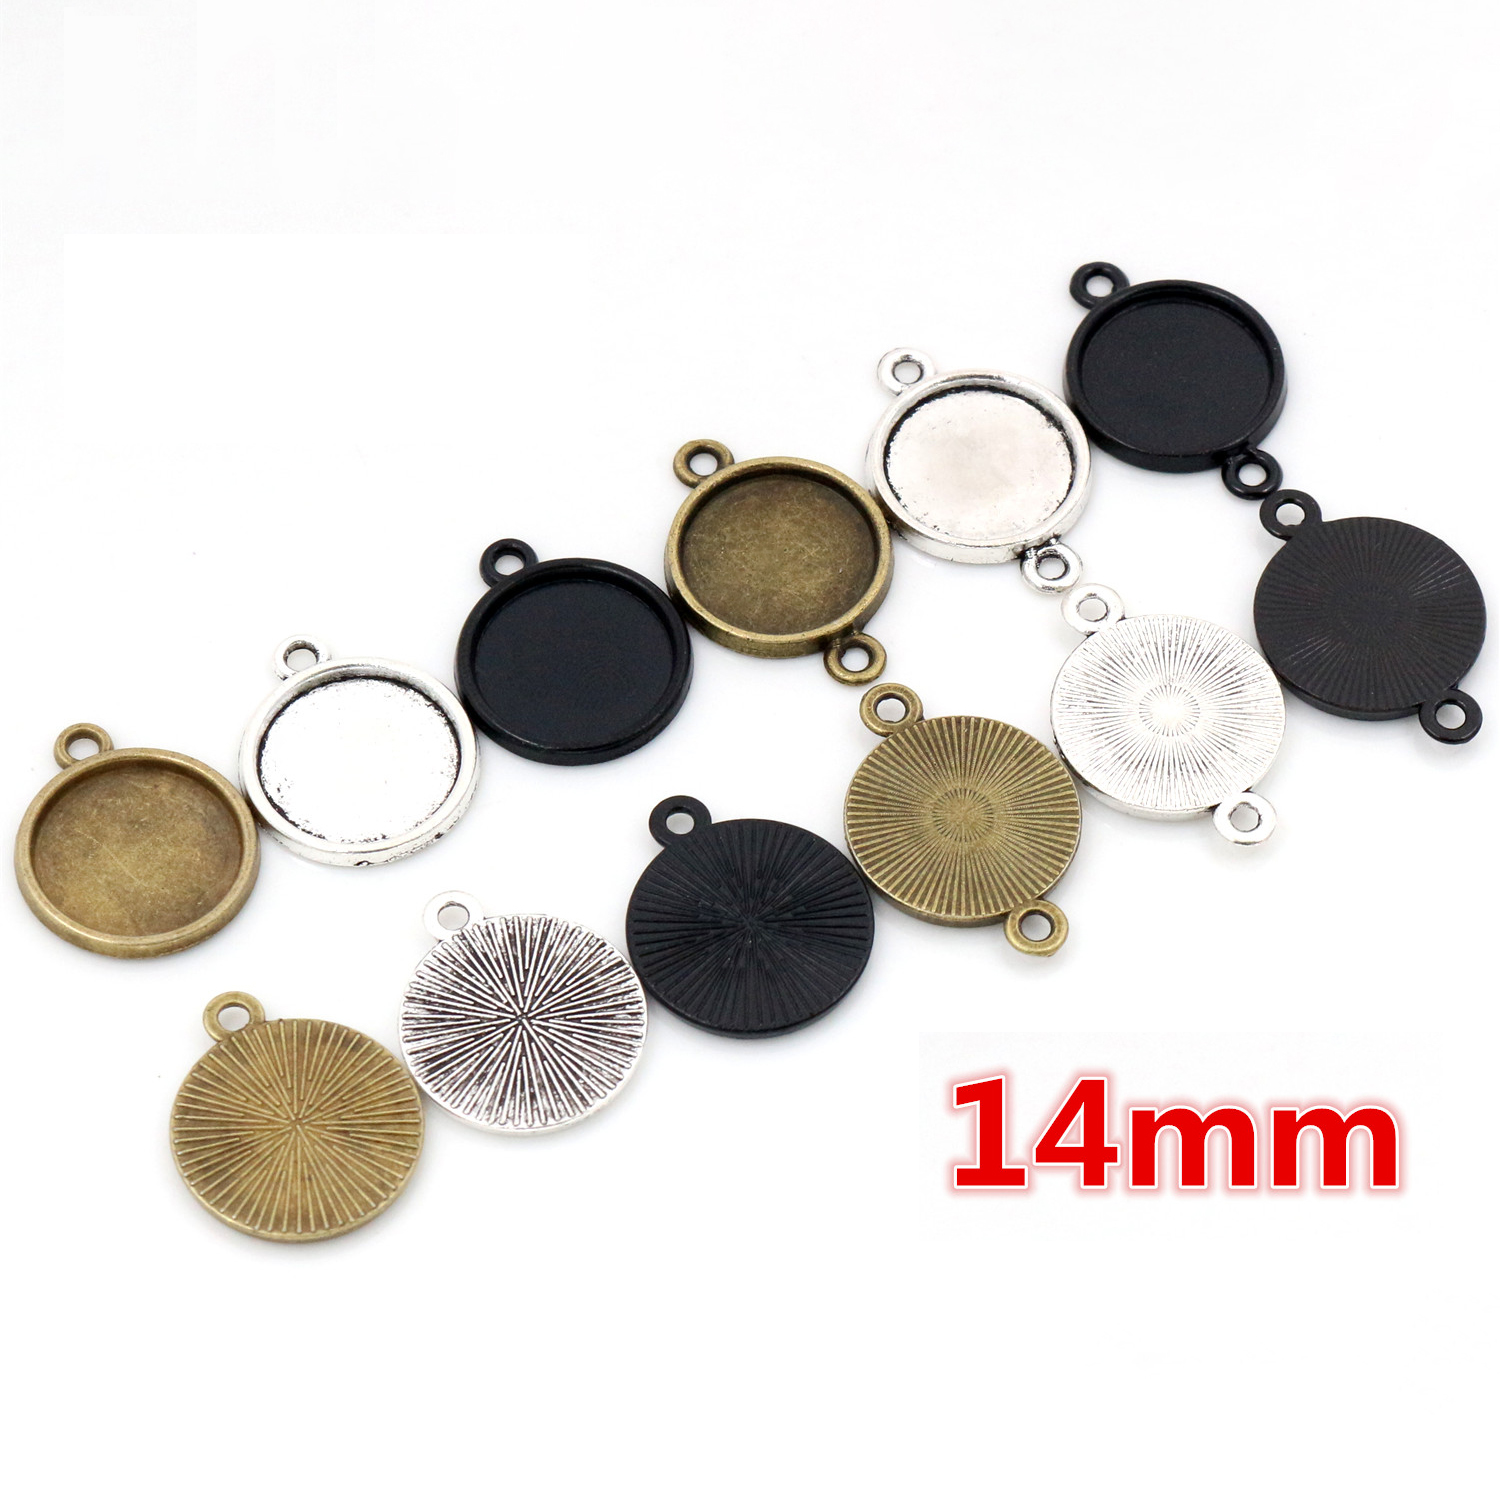 30pcs 14mm Inner Size Antique Bronze Silver Plated And Black Plated 6 Simple Style Cabochon Base Cameo Setting Charms Pendant